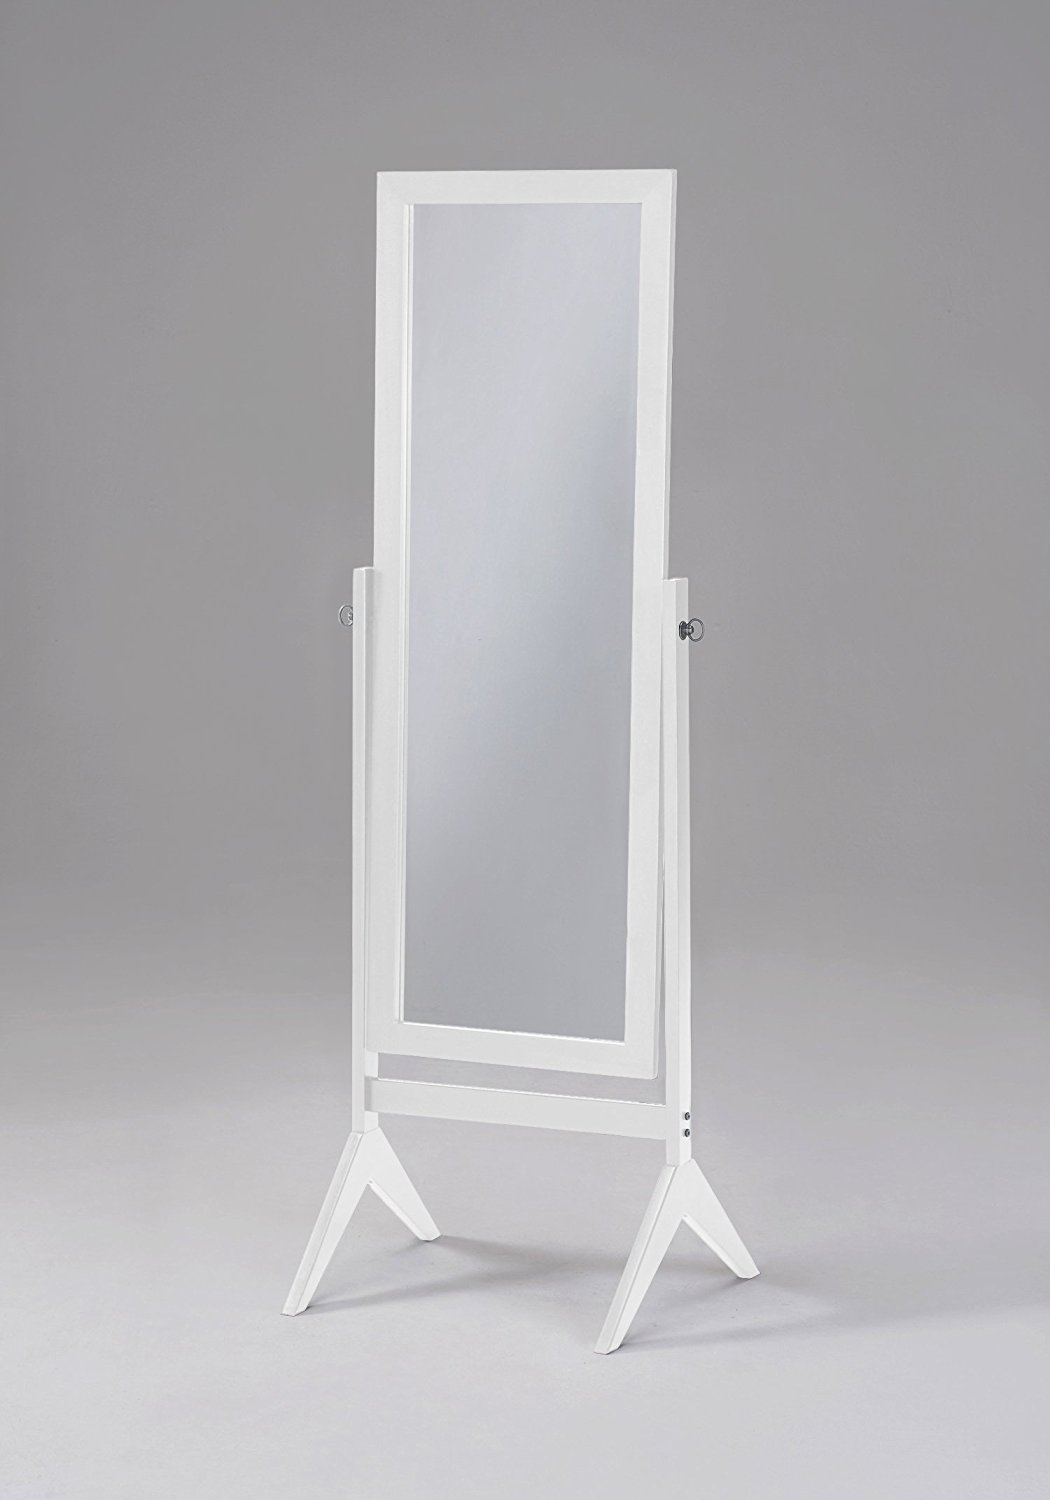 Shop Amazon Floor Mirrors Intended For Free Standing Oval Mirror (View 11 of 15)